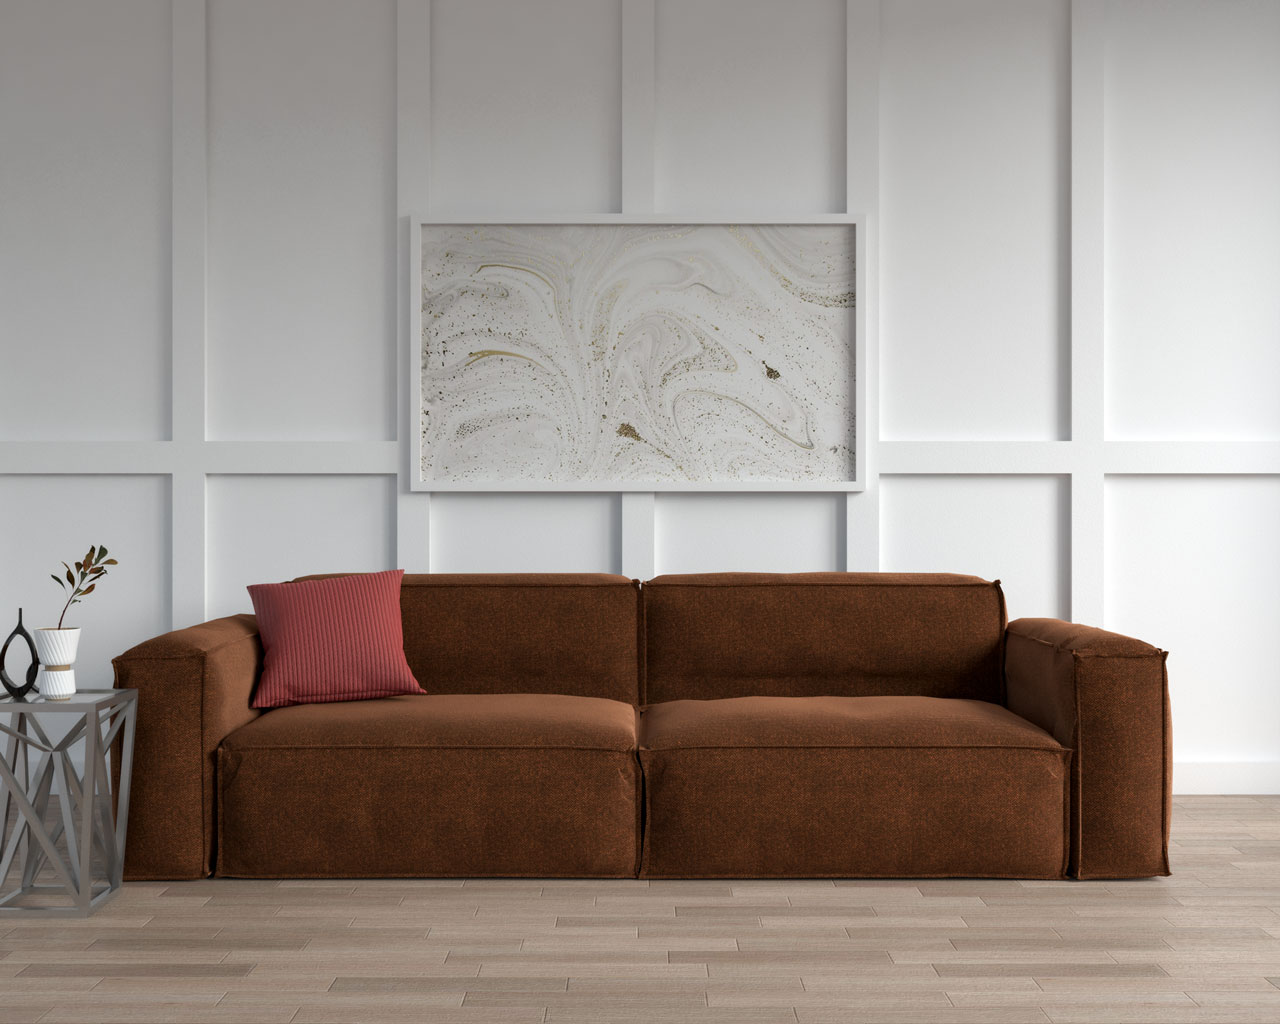 Brown sofa with red pillow